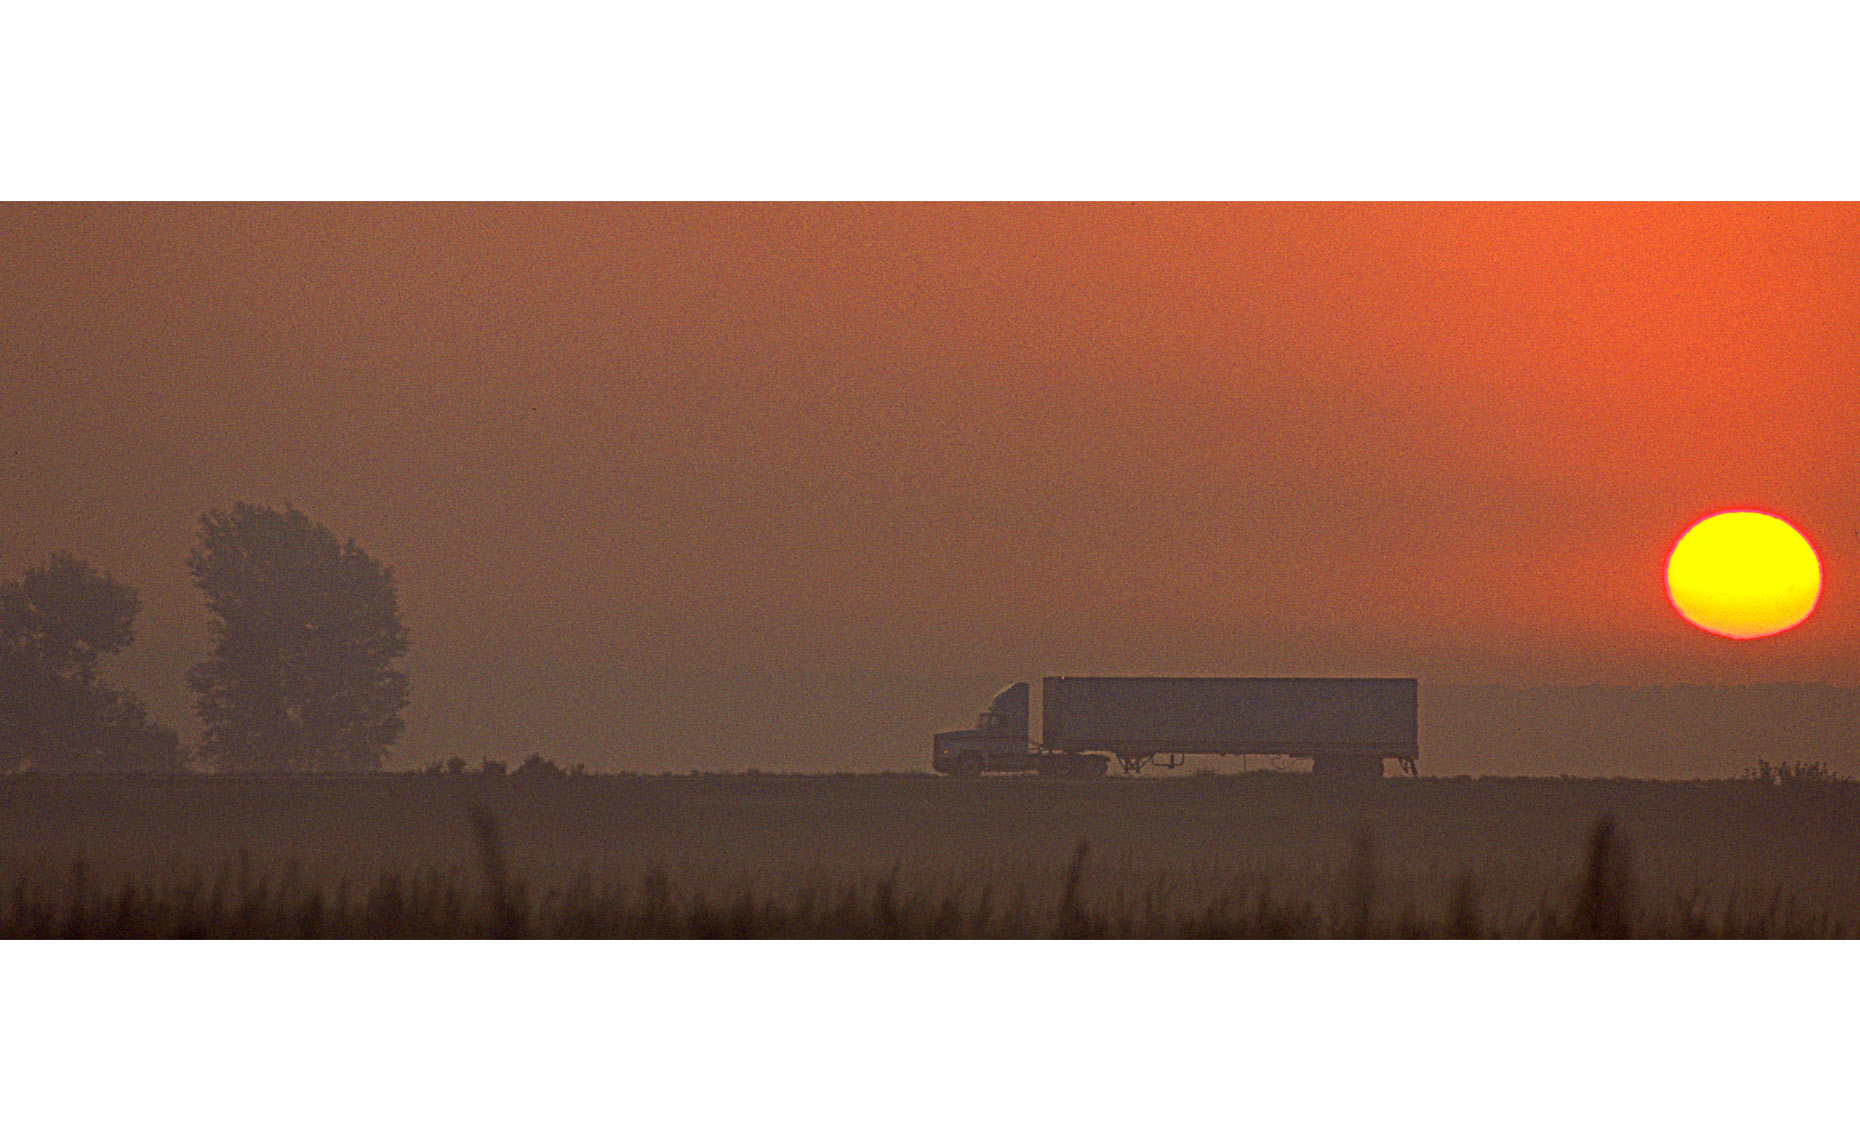 Semi-truck-sunrise